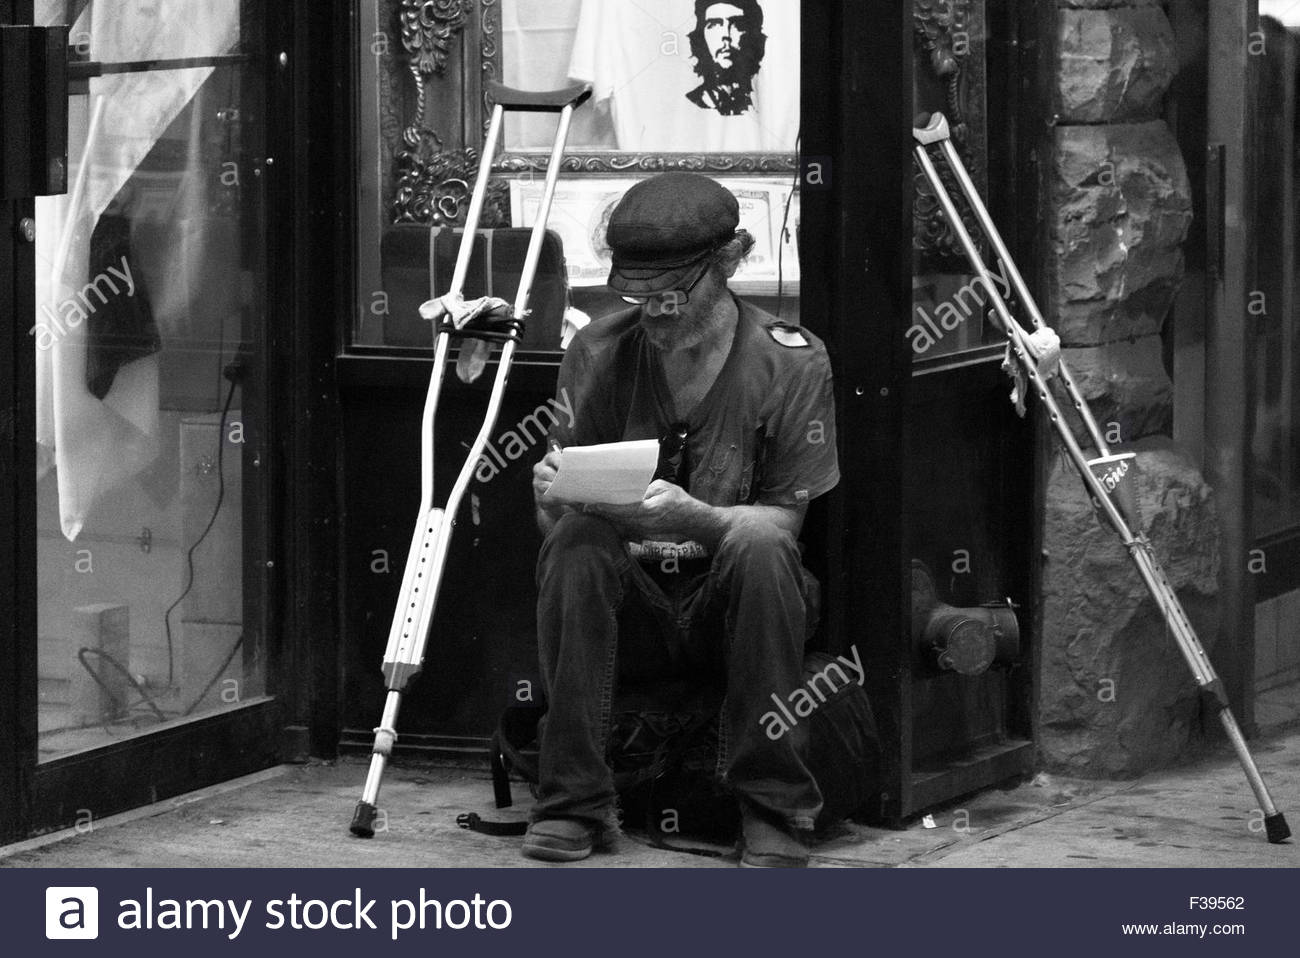 Black and white image of an old man in torn clothes writing on paper with underarm crutches by his side. Disabled Stock Photo